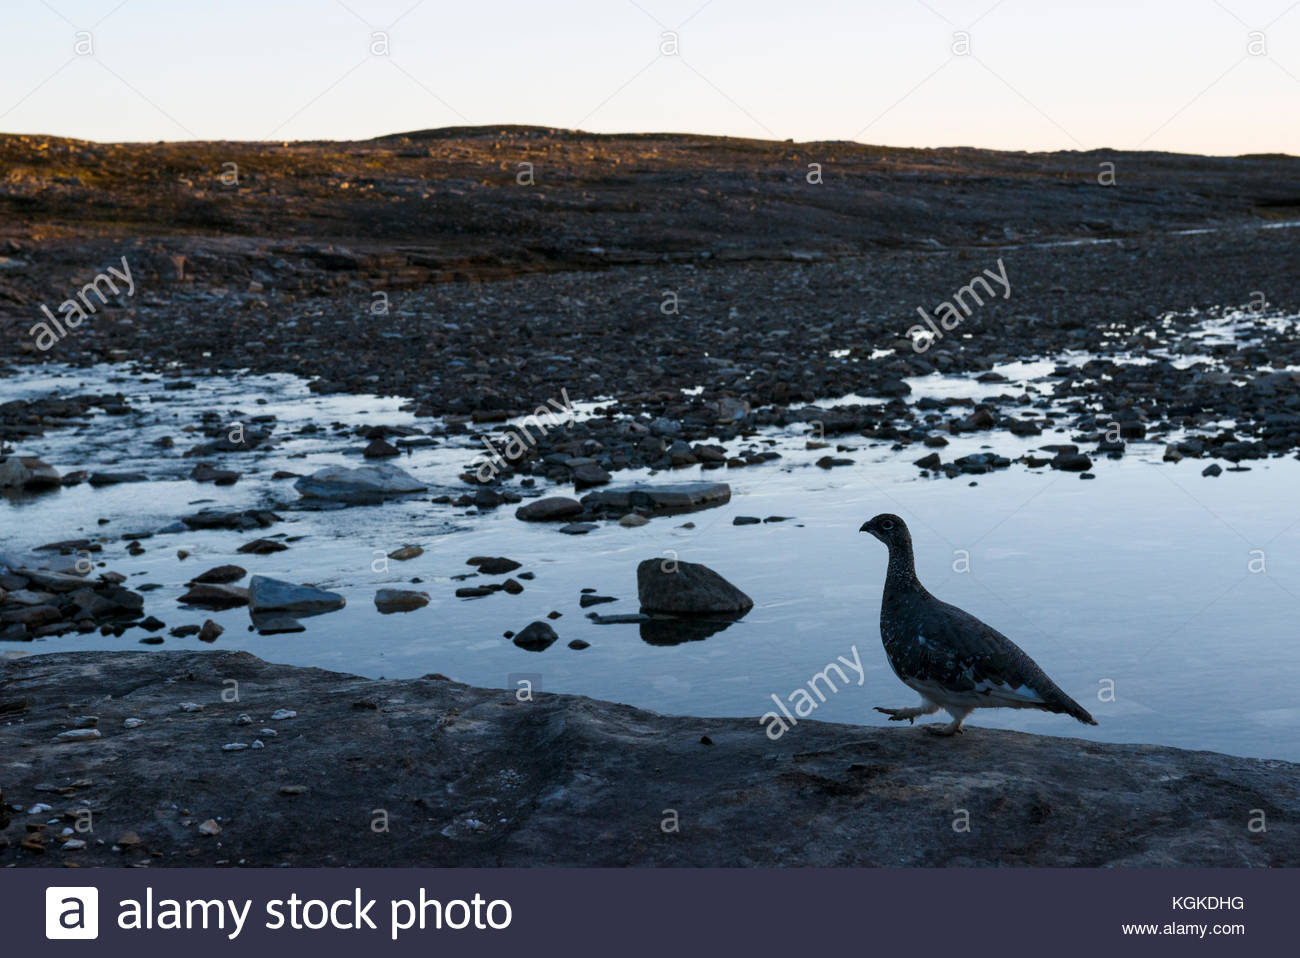 Rock ptarmigan, Lagopus muta, in late evening light by a small river. - Stock Image